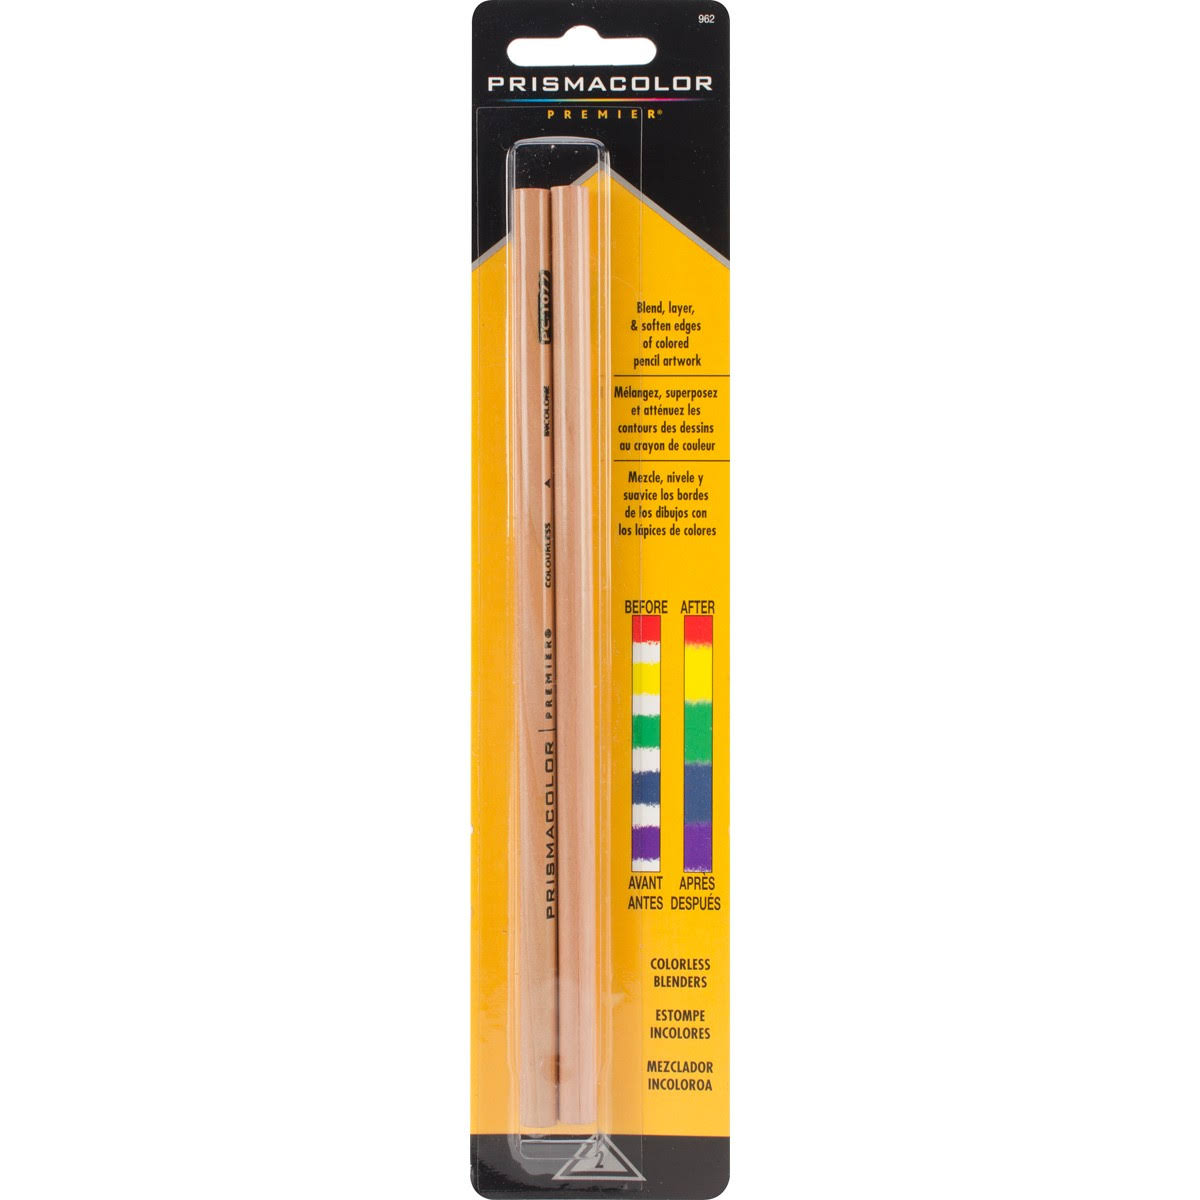 Prismacolor Premier Colorless Blender Pencils - 2pcs